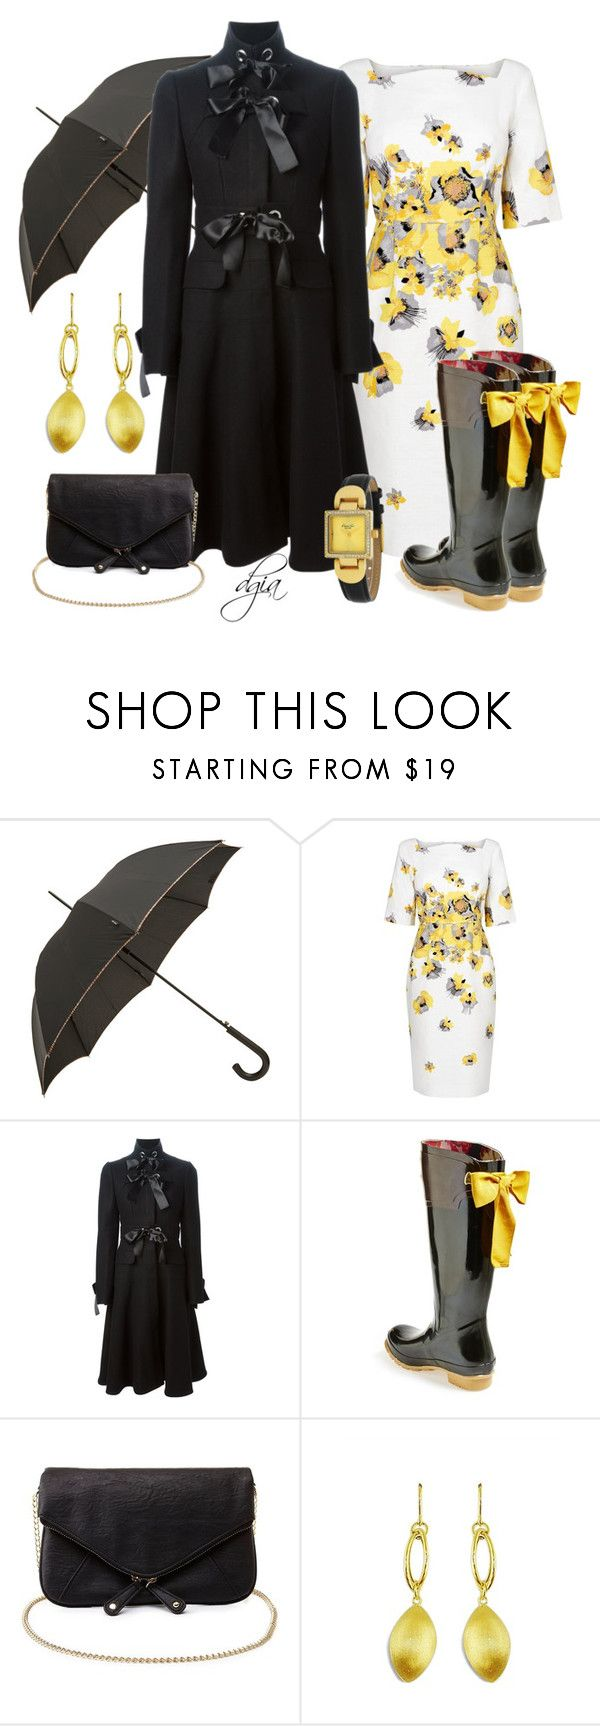 """""""Rain and bows"""" by dgia ❤ liked on Polyvore featuring Paul Smith, L.K.Bennett, Alexander McQueen, Joules, Charlotte Russe, Lord & Taylor and Kenneth Cole"""